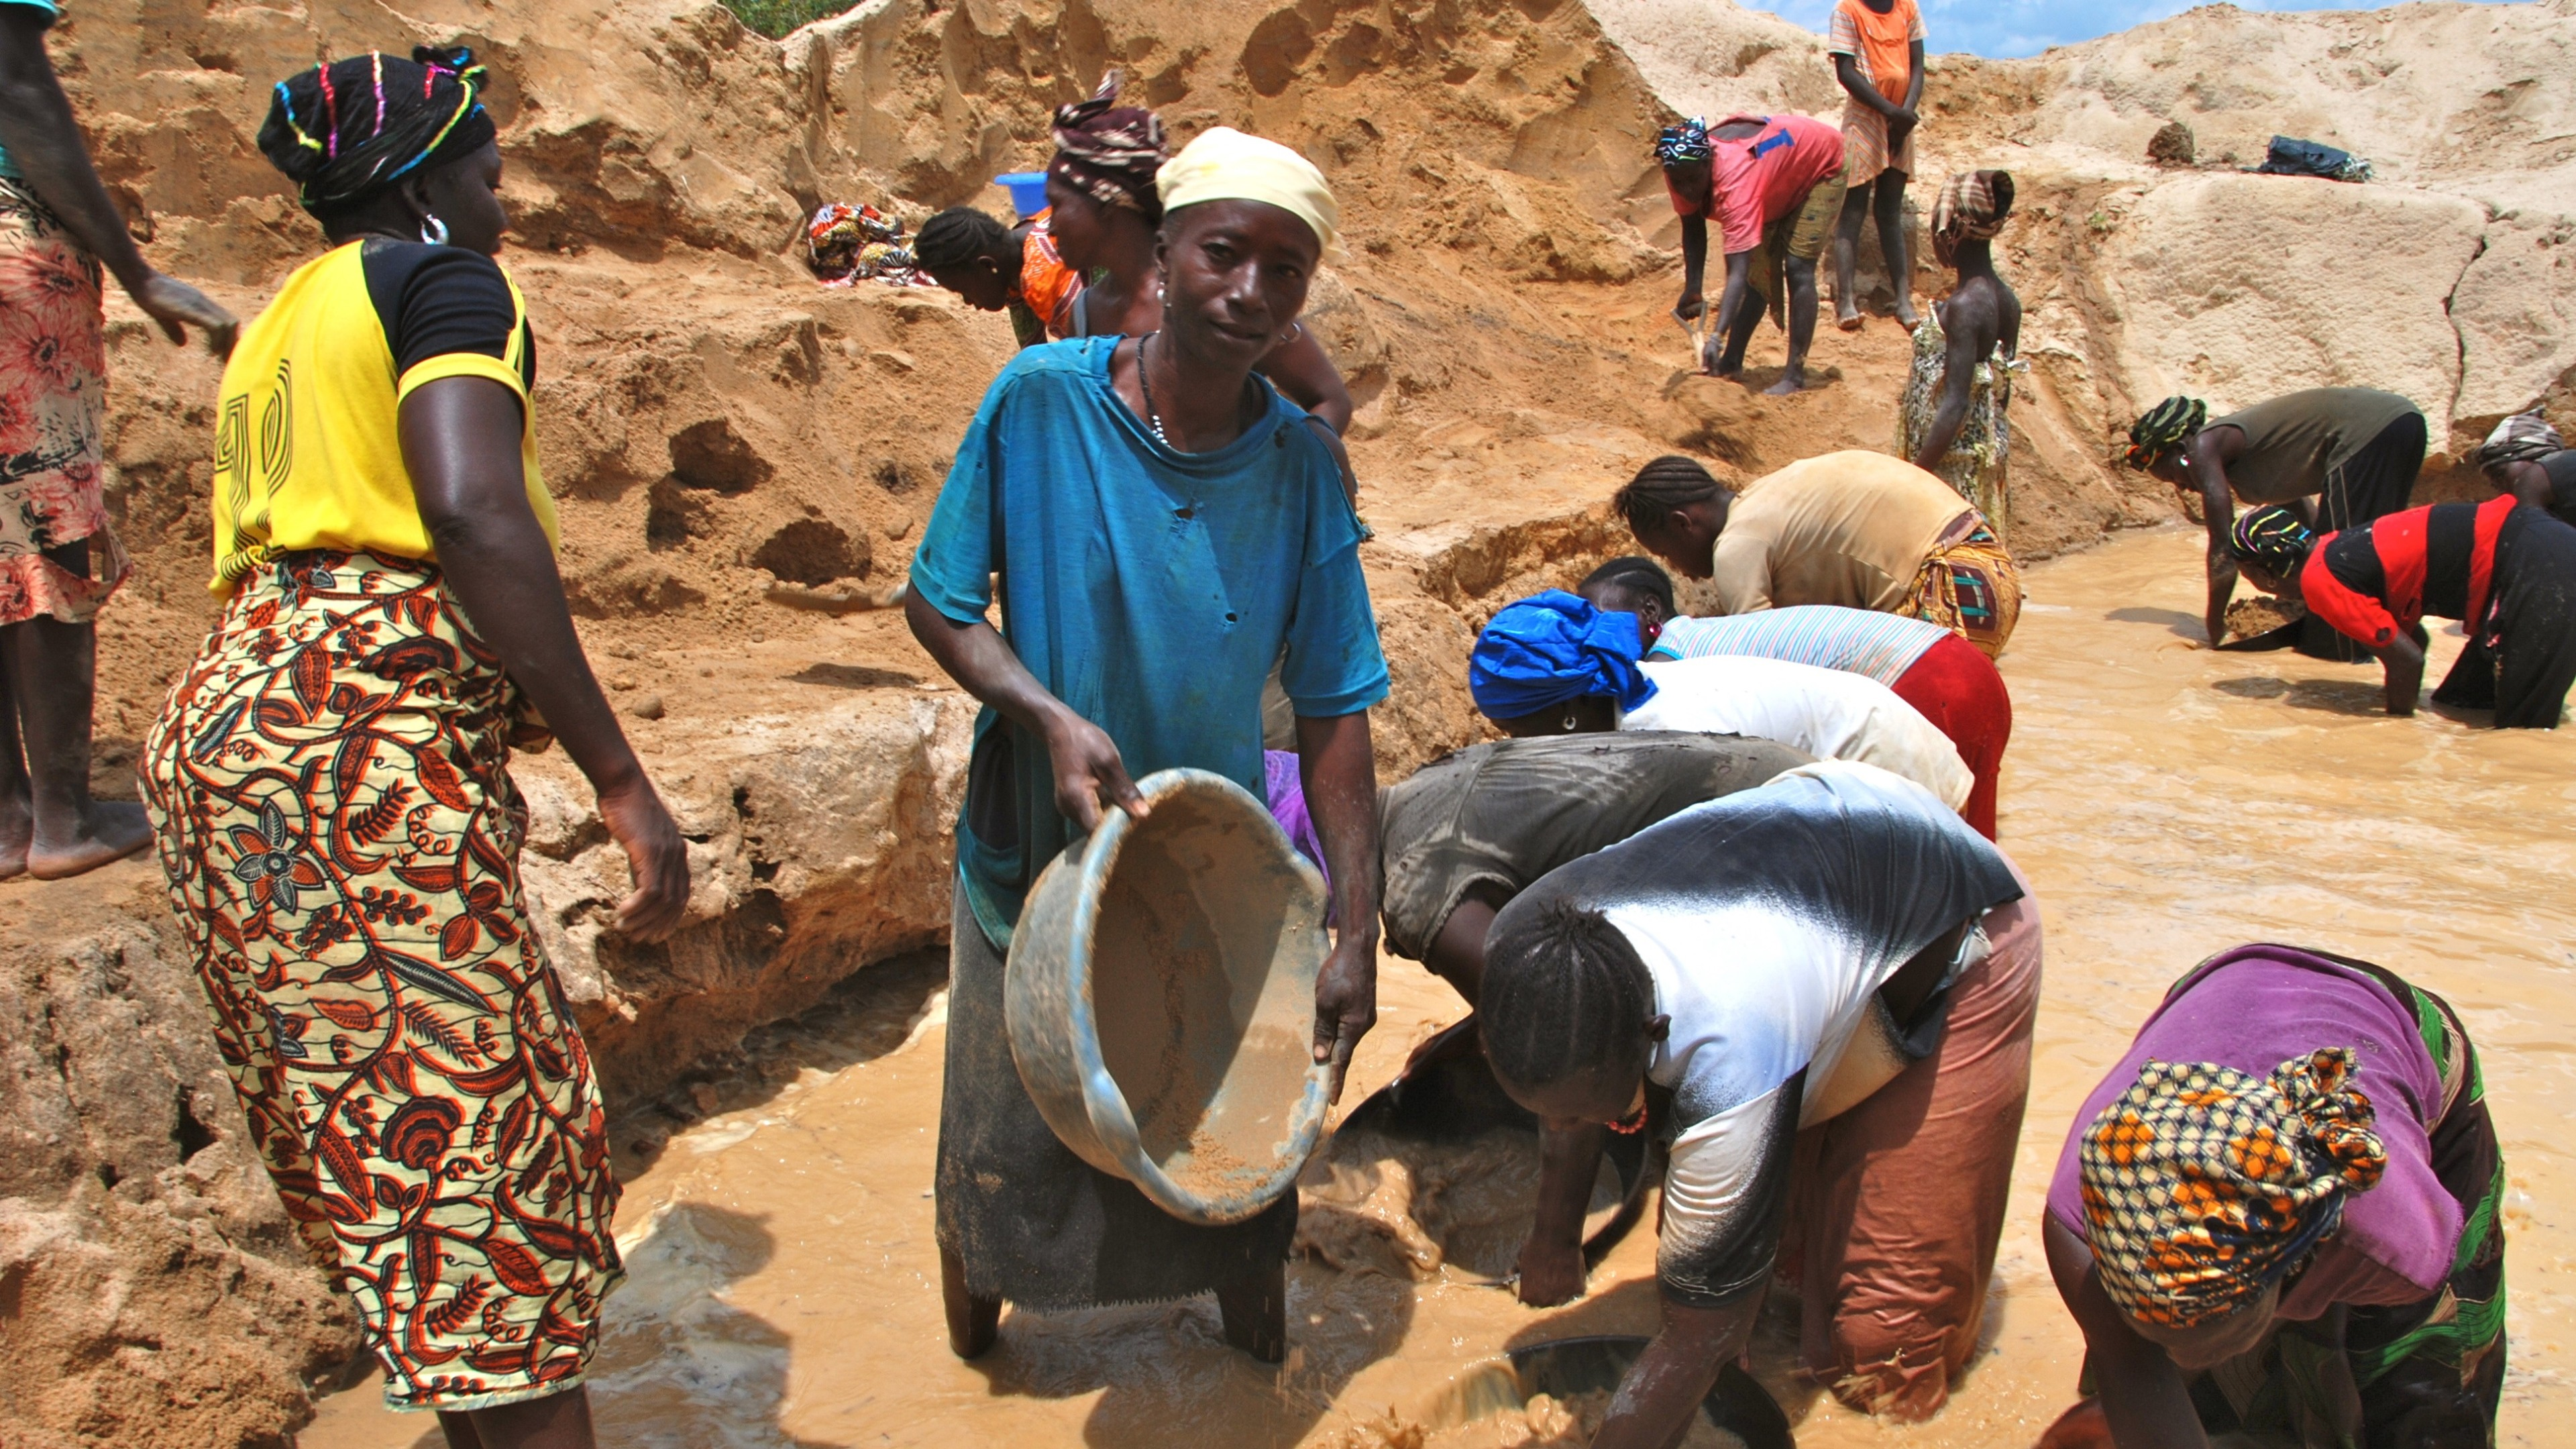 a group of people mining for gold in a clay pool